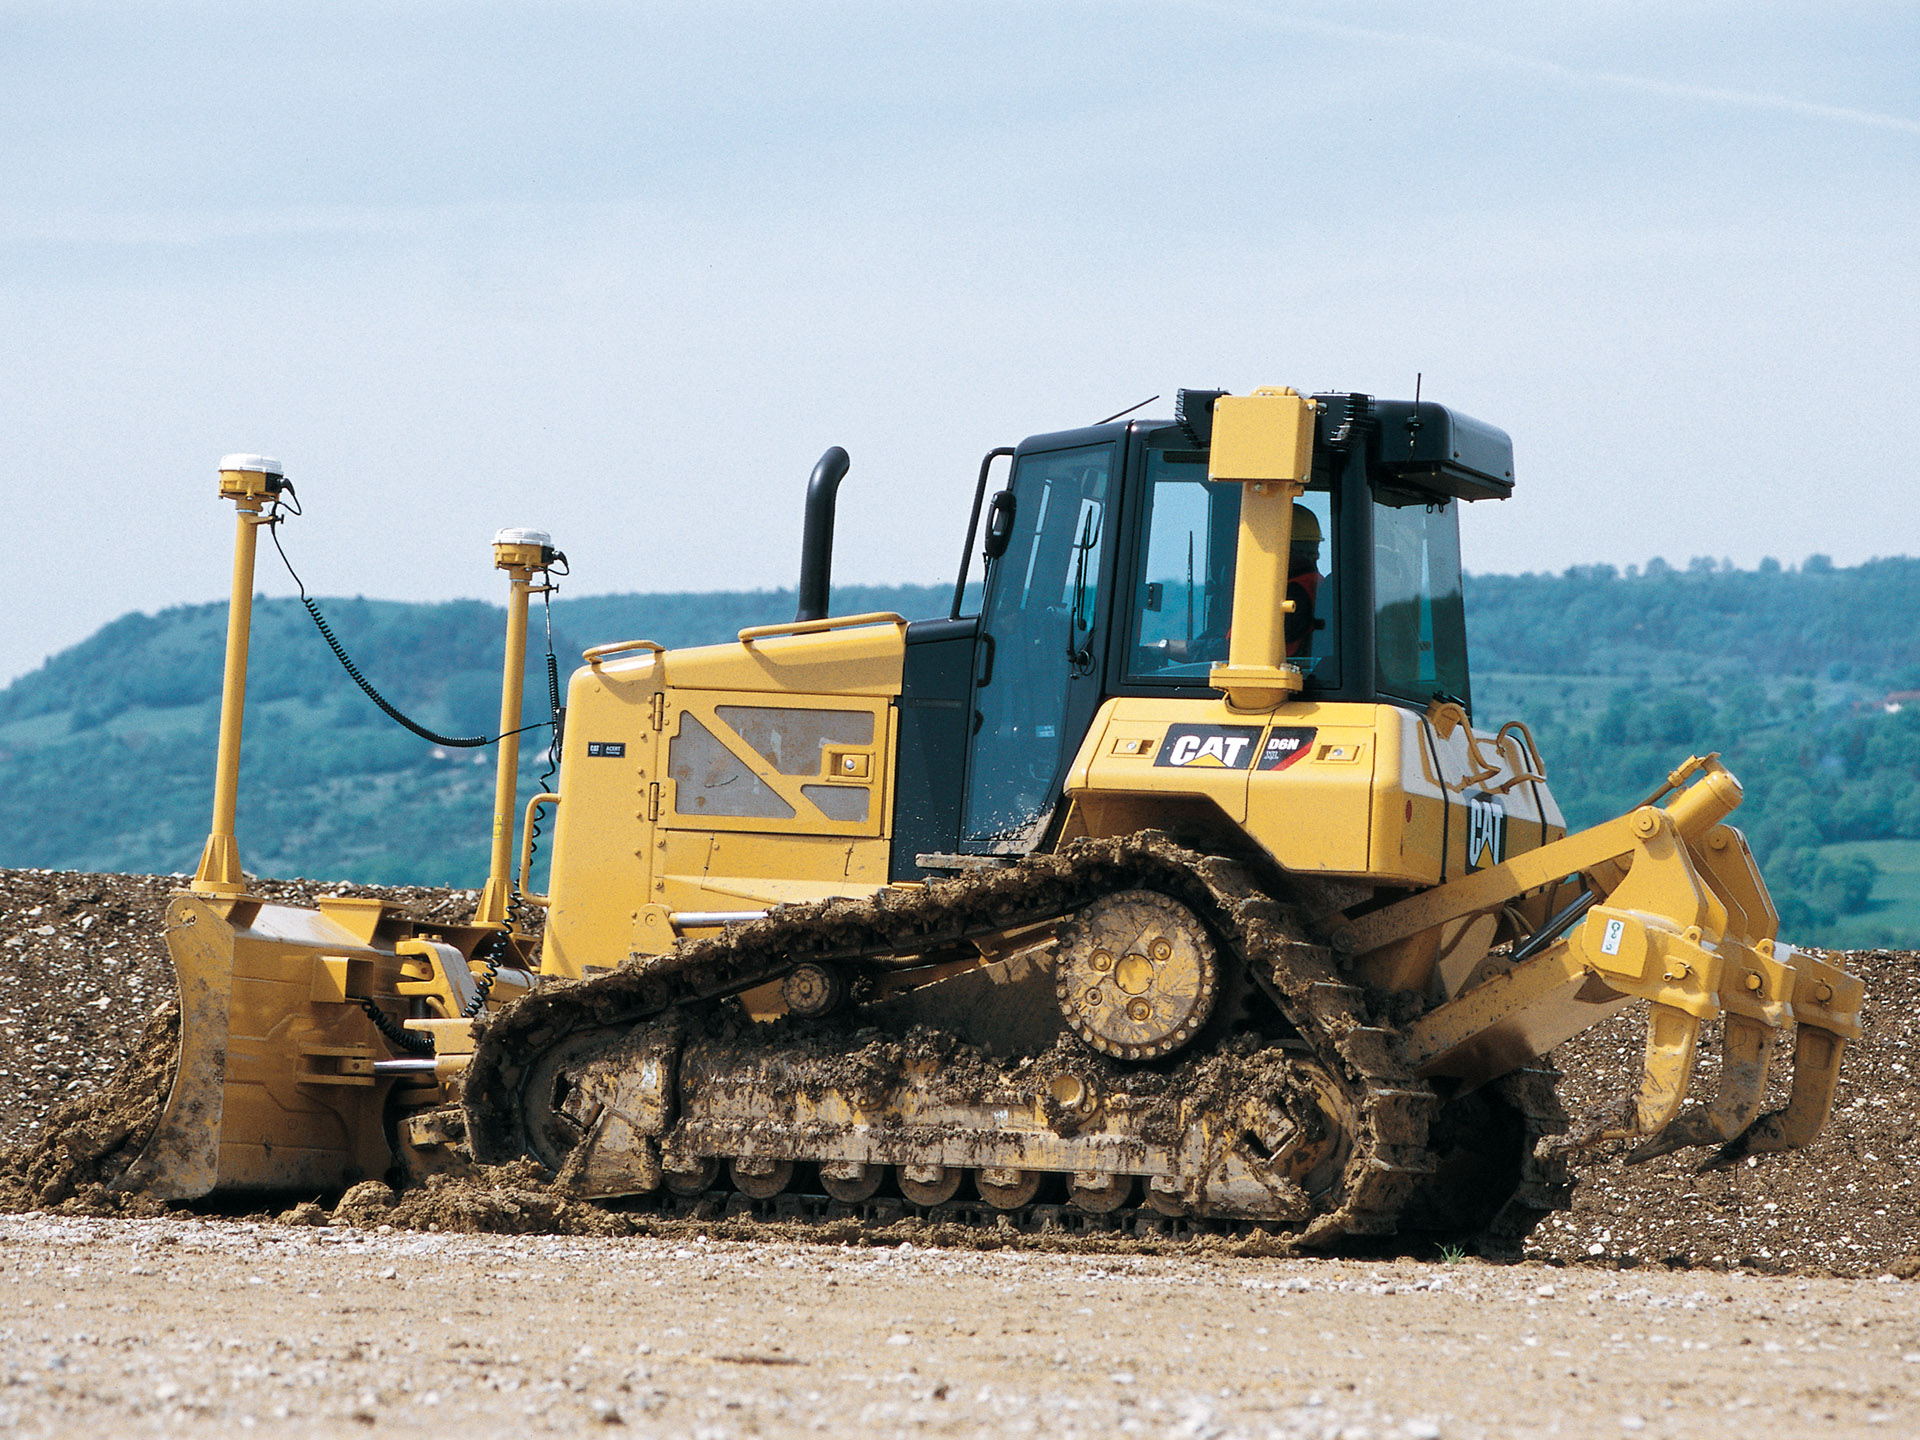 Caterpillar d6 photo - 2